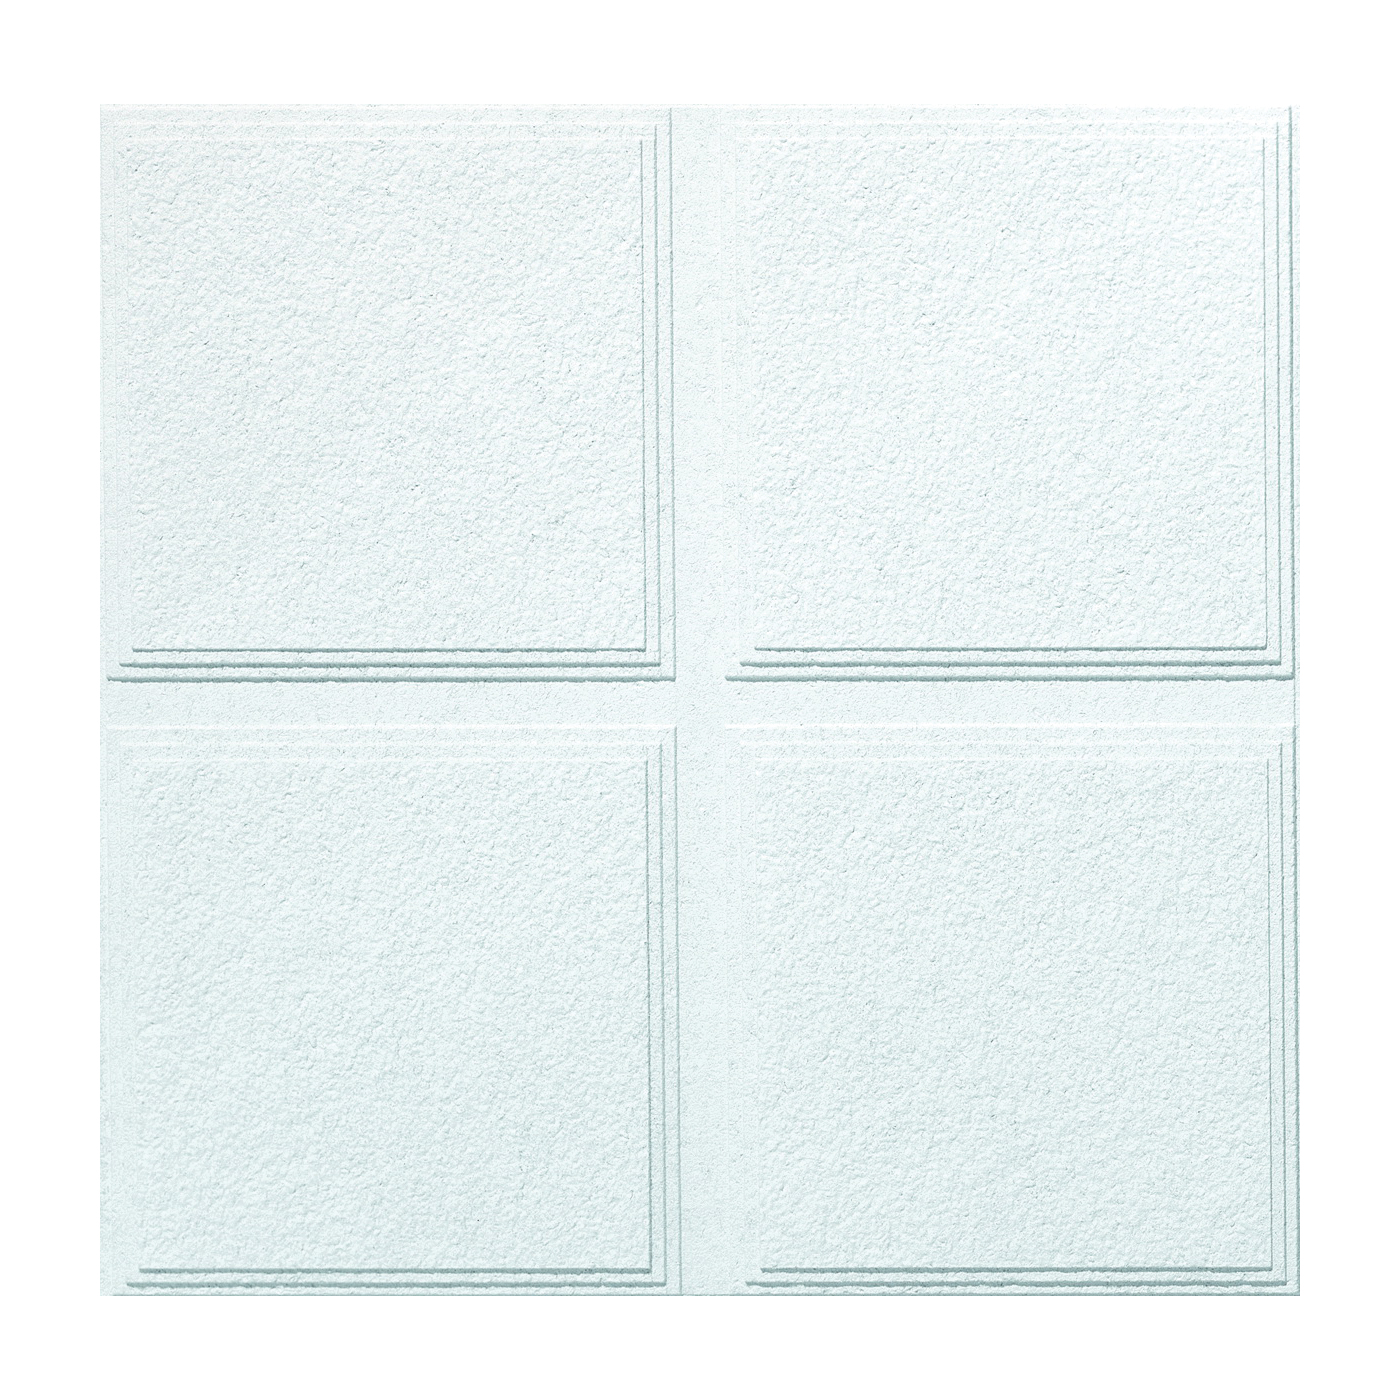 Picture of USG Luna Pedestals IV CLIMAPLUS R72716 Ceiling Panel, 2 ft L, 2 ft W, 3/4 in Thick, Mineral Fiber, White